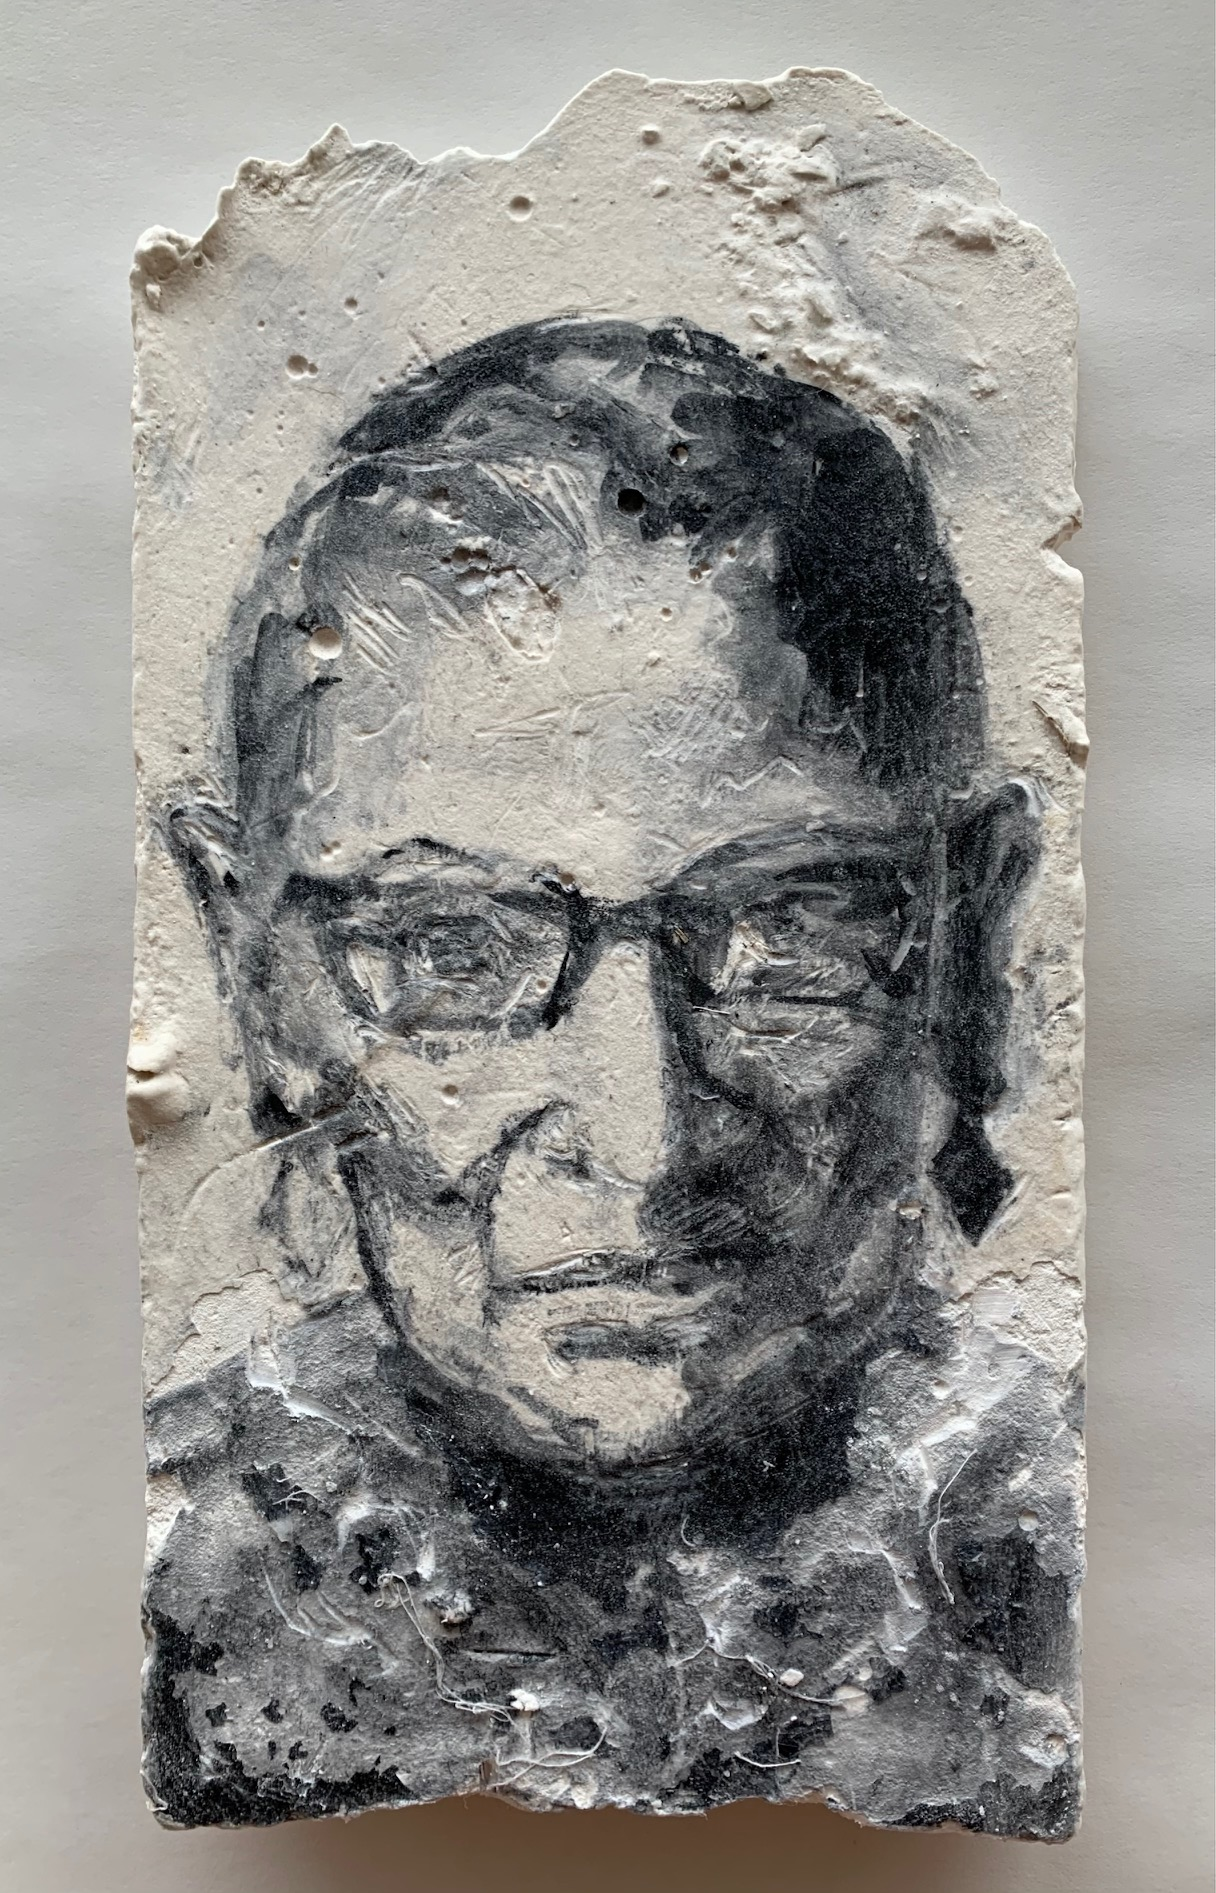 RBG   2021  gouache, cold wax, gauze on